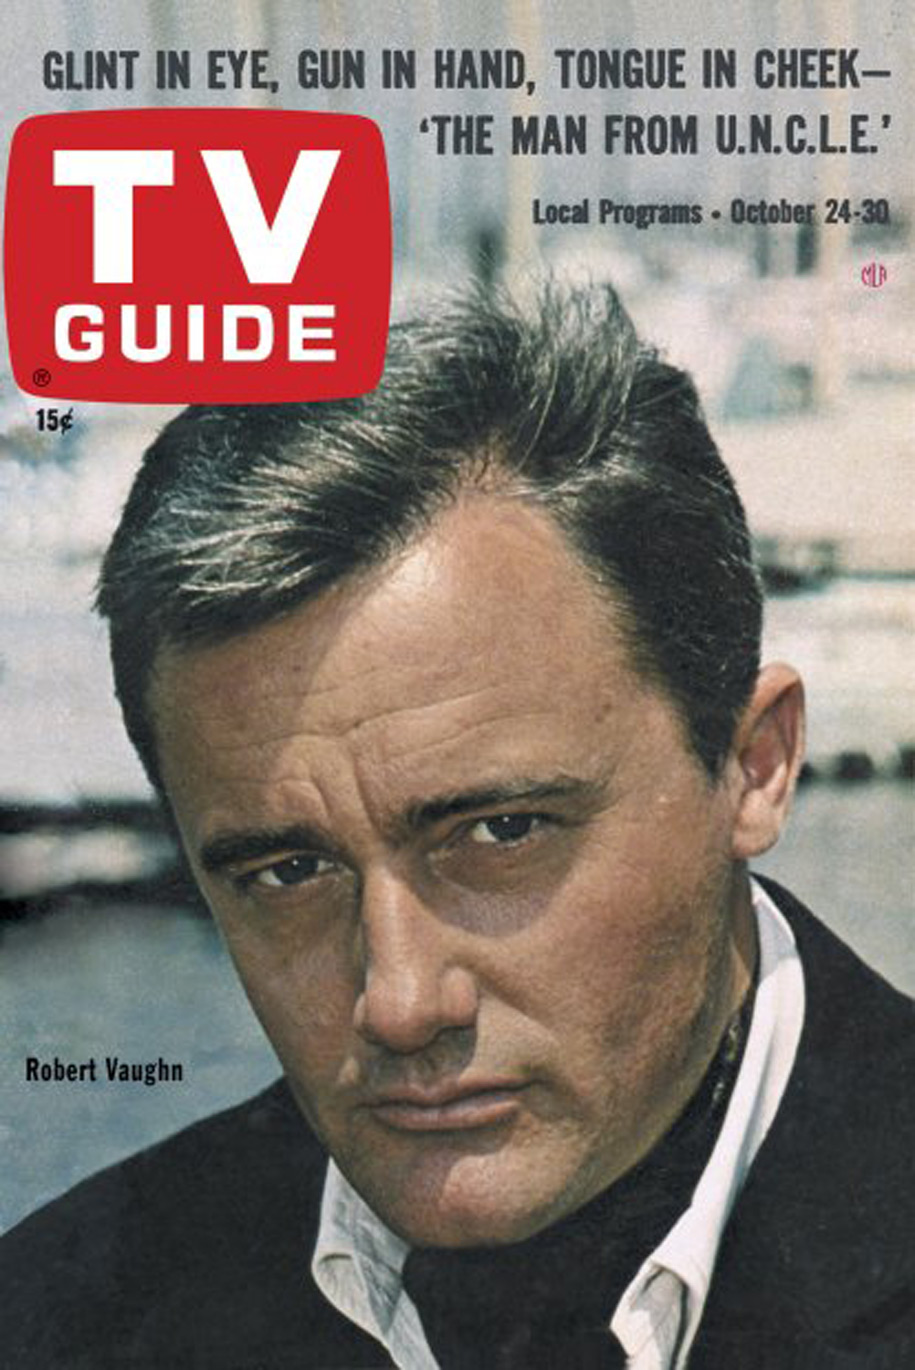 TV Guide October 24 1964 Montana-Alberta Edition Front Cover